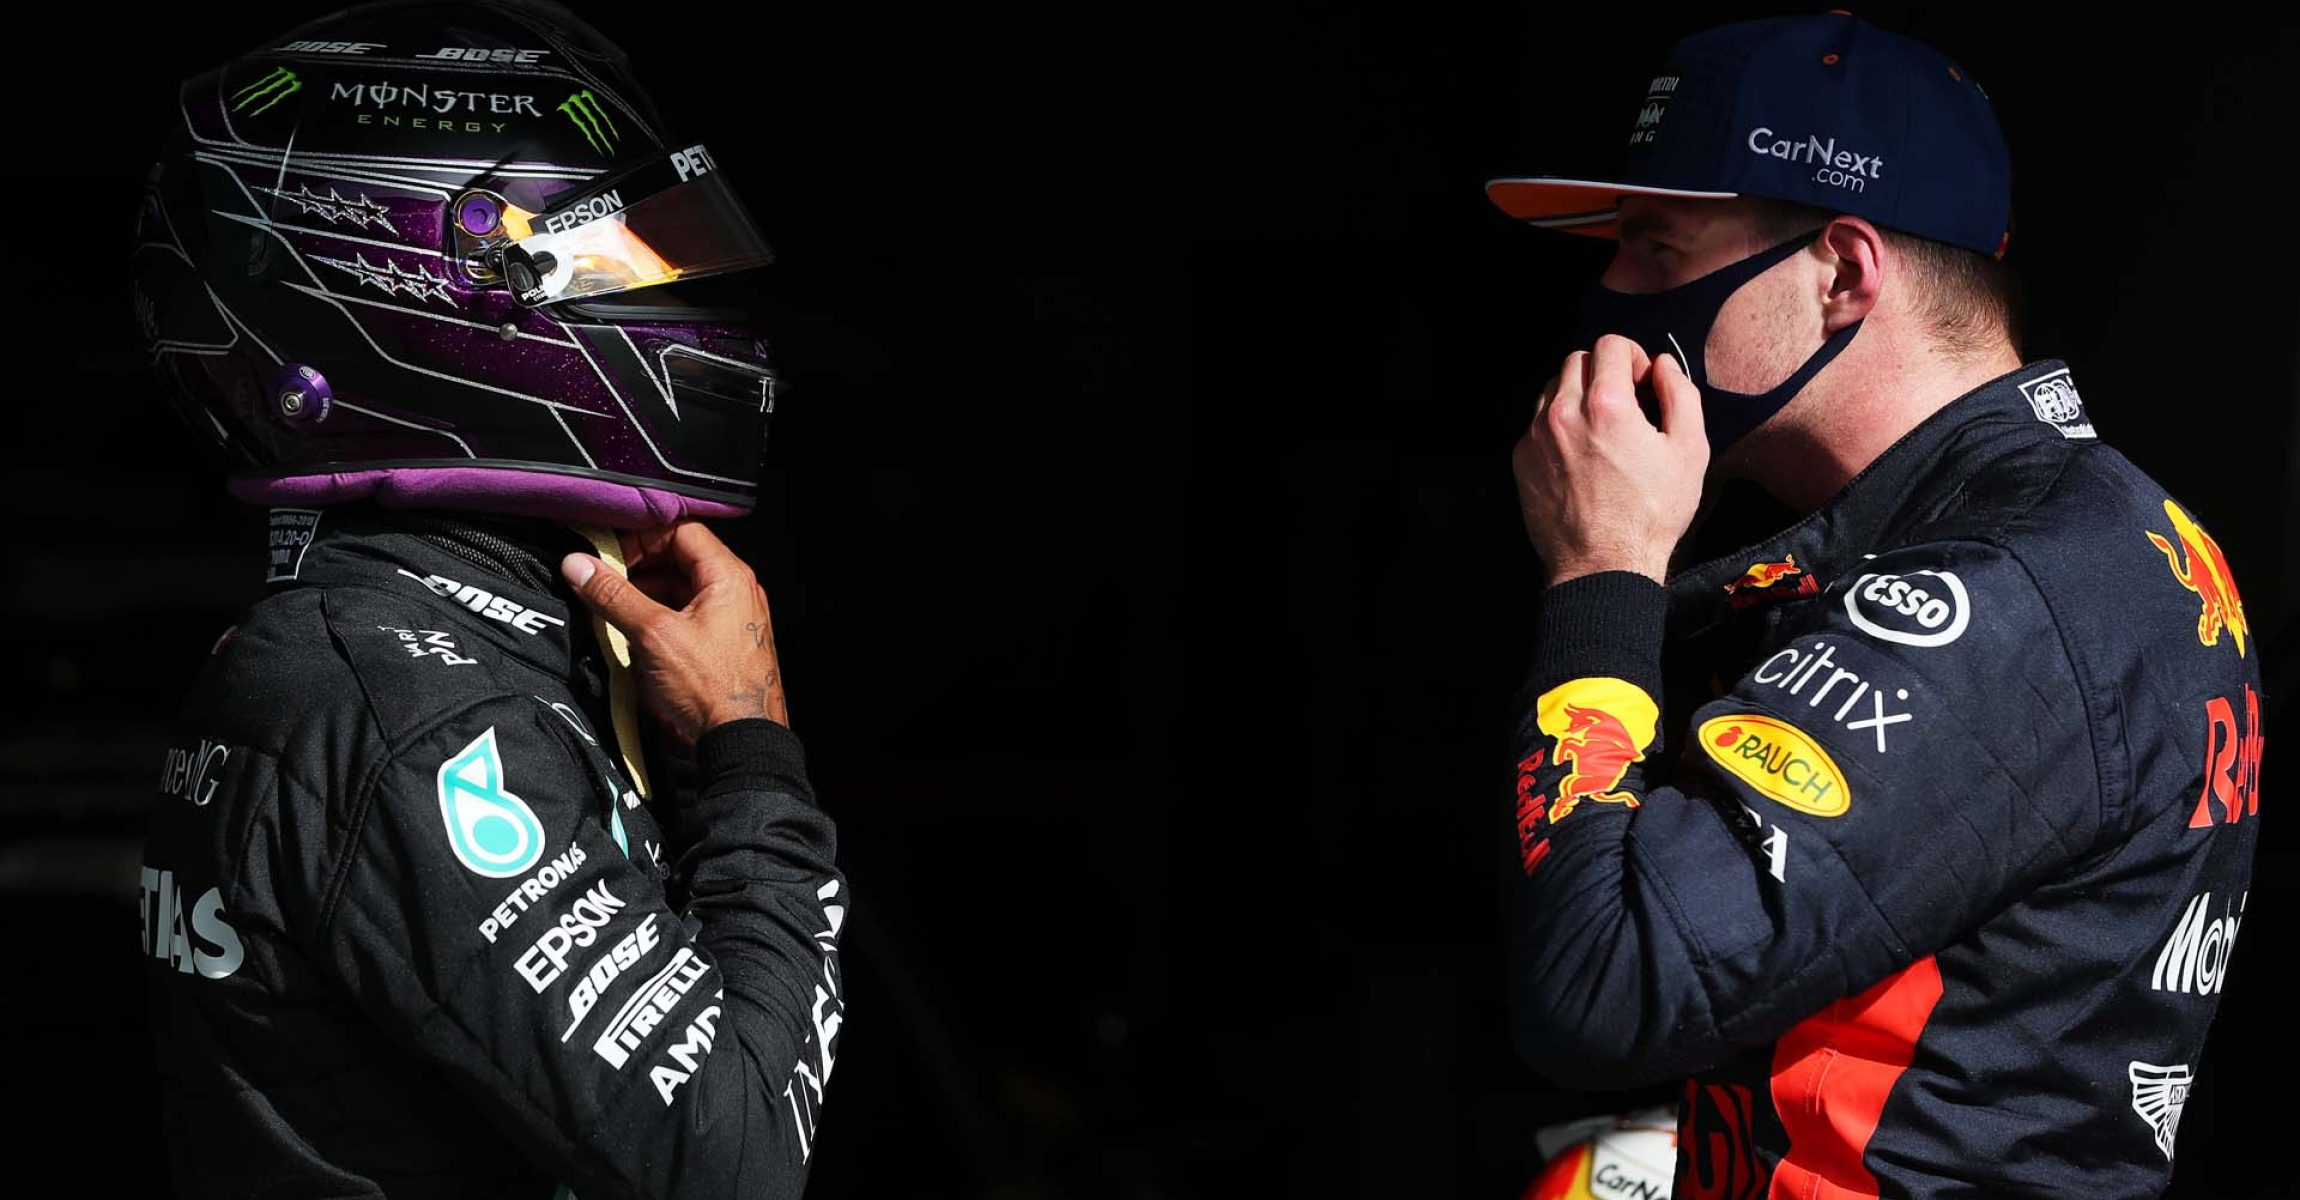 PORTIMAO, PORTUGAL - OCTOBER 24: Pole position qualifier Lewis Hamilton of Great Britain and Mercedes GP speaks with third placed Max Verstappen of Netherlands and Red Bull Racing in parc ferme during qualifying ahead of the F1 Grand Prix of Portugal at Autodromo Internacional do Algarve on October 24, 2020 in Portimao, Portugal. (Photo by Jose Sena Goulao - Pool/Getty Images)